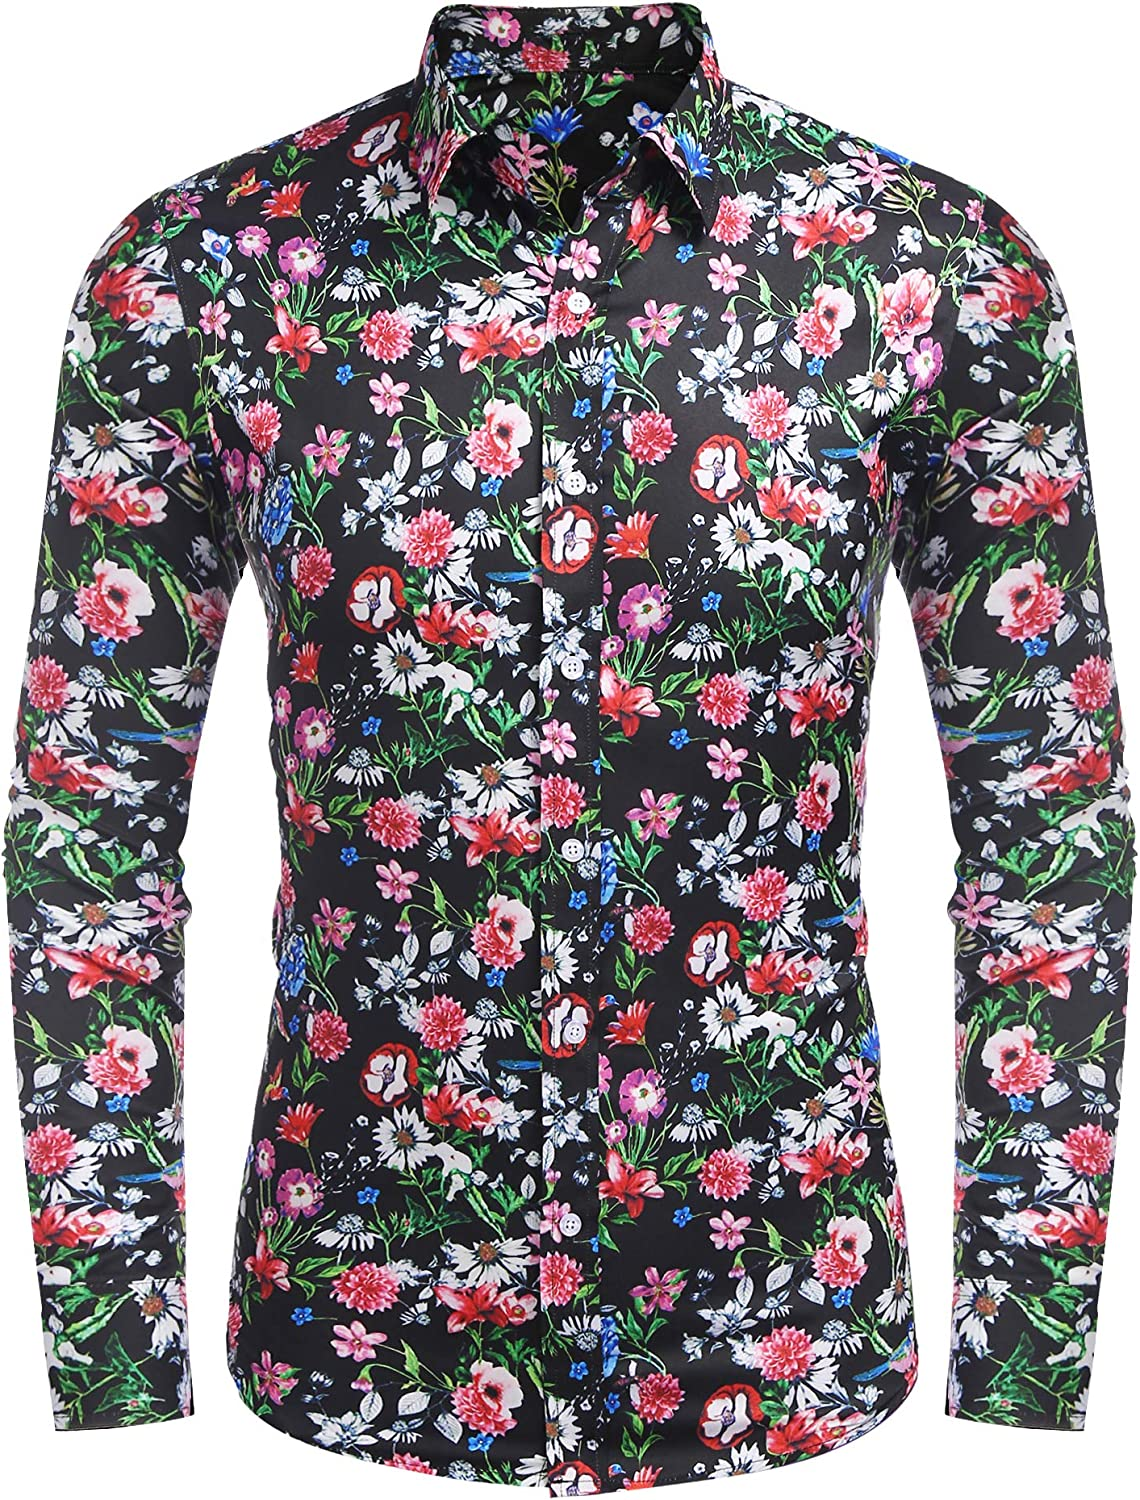 Top Slim Fit Blouse Floral Stylish Shirt Luxury Dress Shirts Casual Long Sleeve